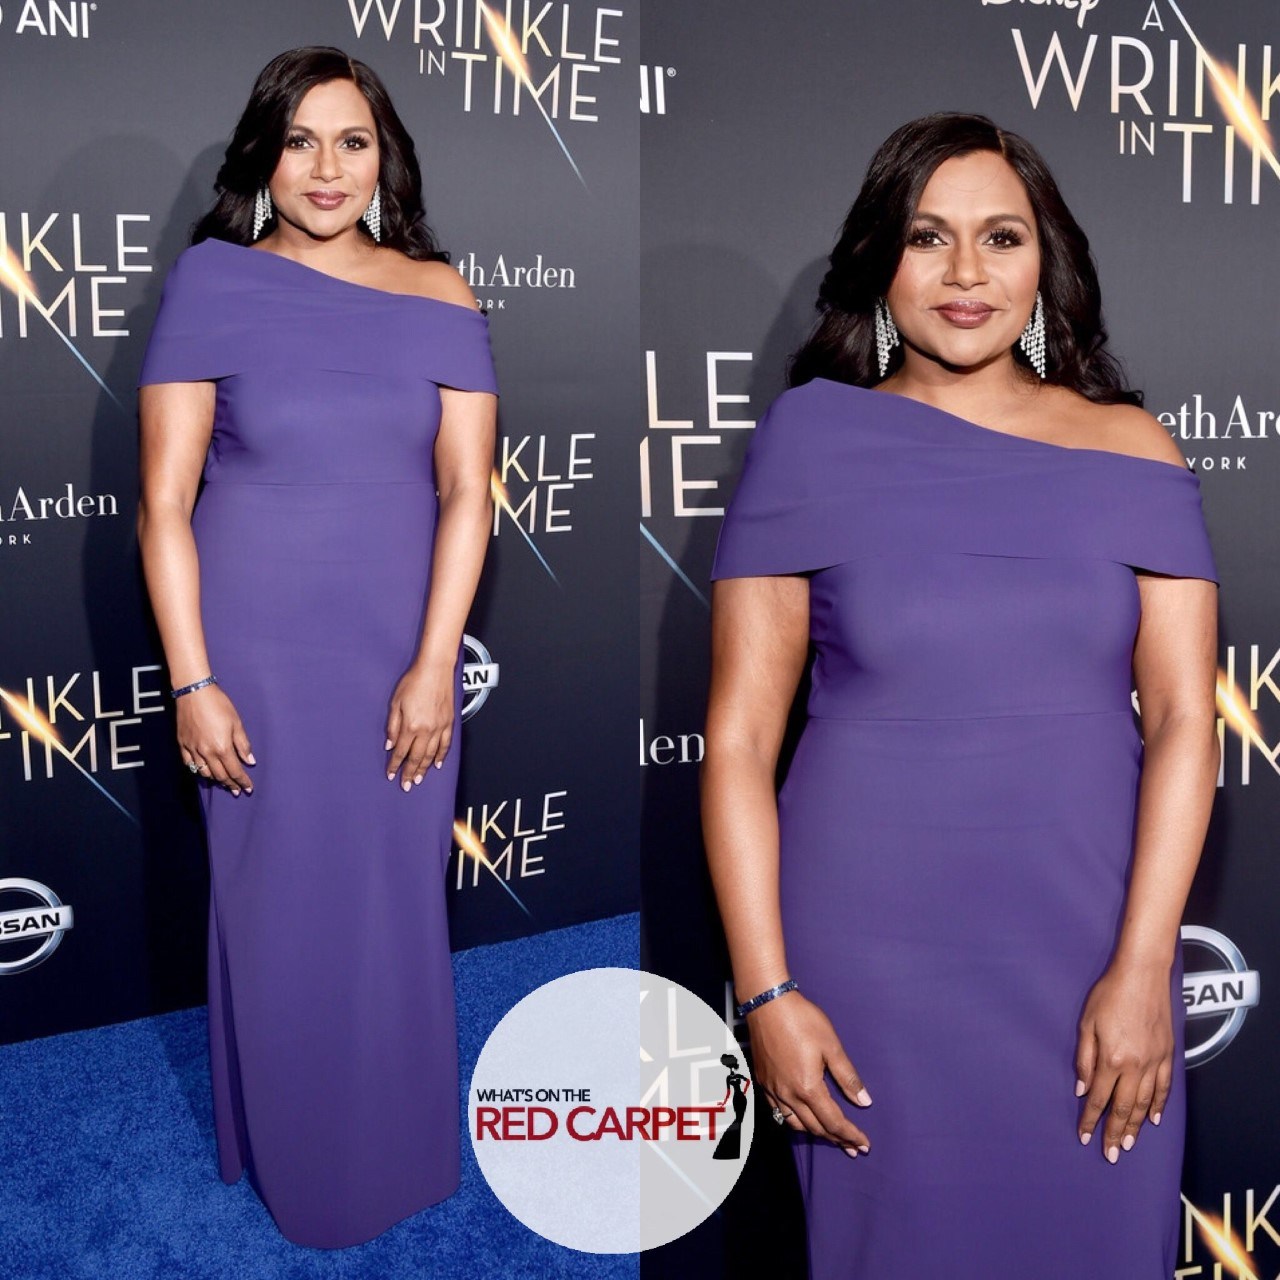 mindy kaling greta Constantine a wrinkle in time Los Angeles premiere fashion style.